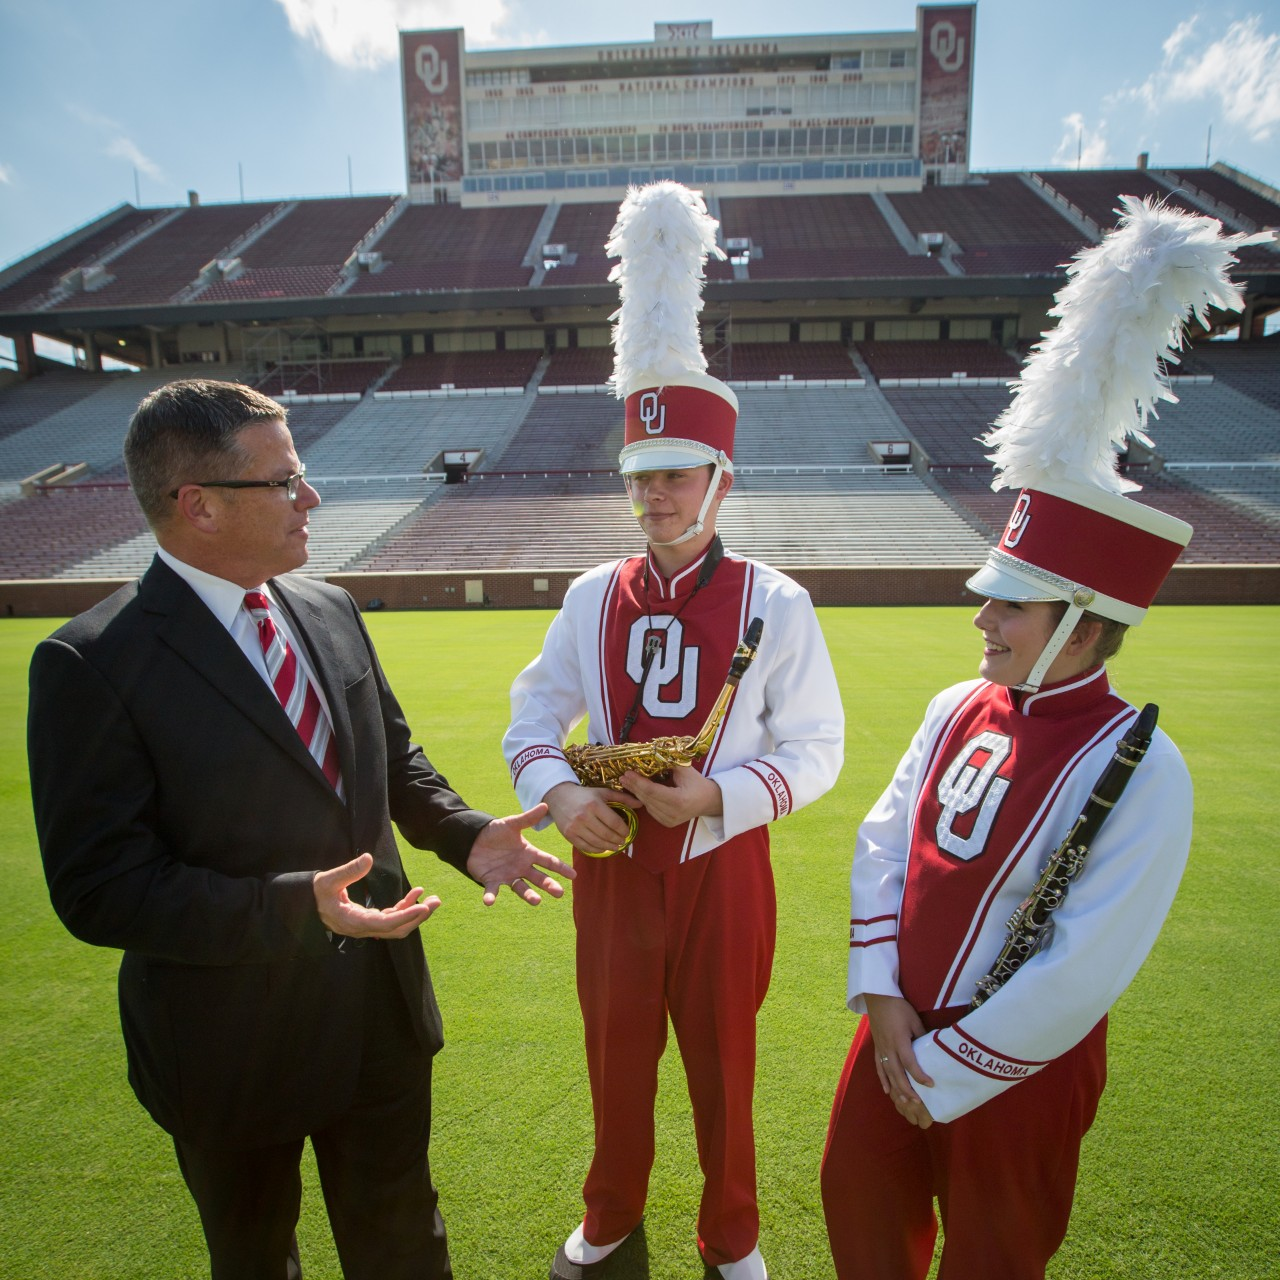 New Pride of Oklahoma uniforms